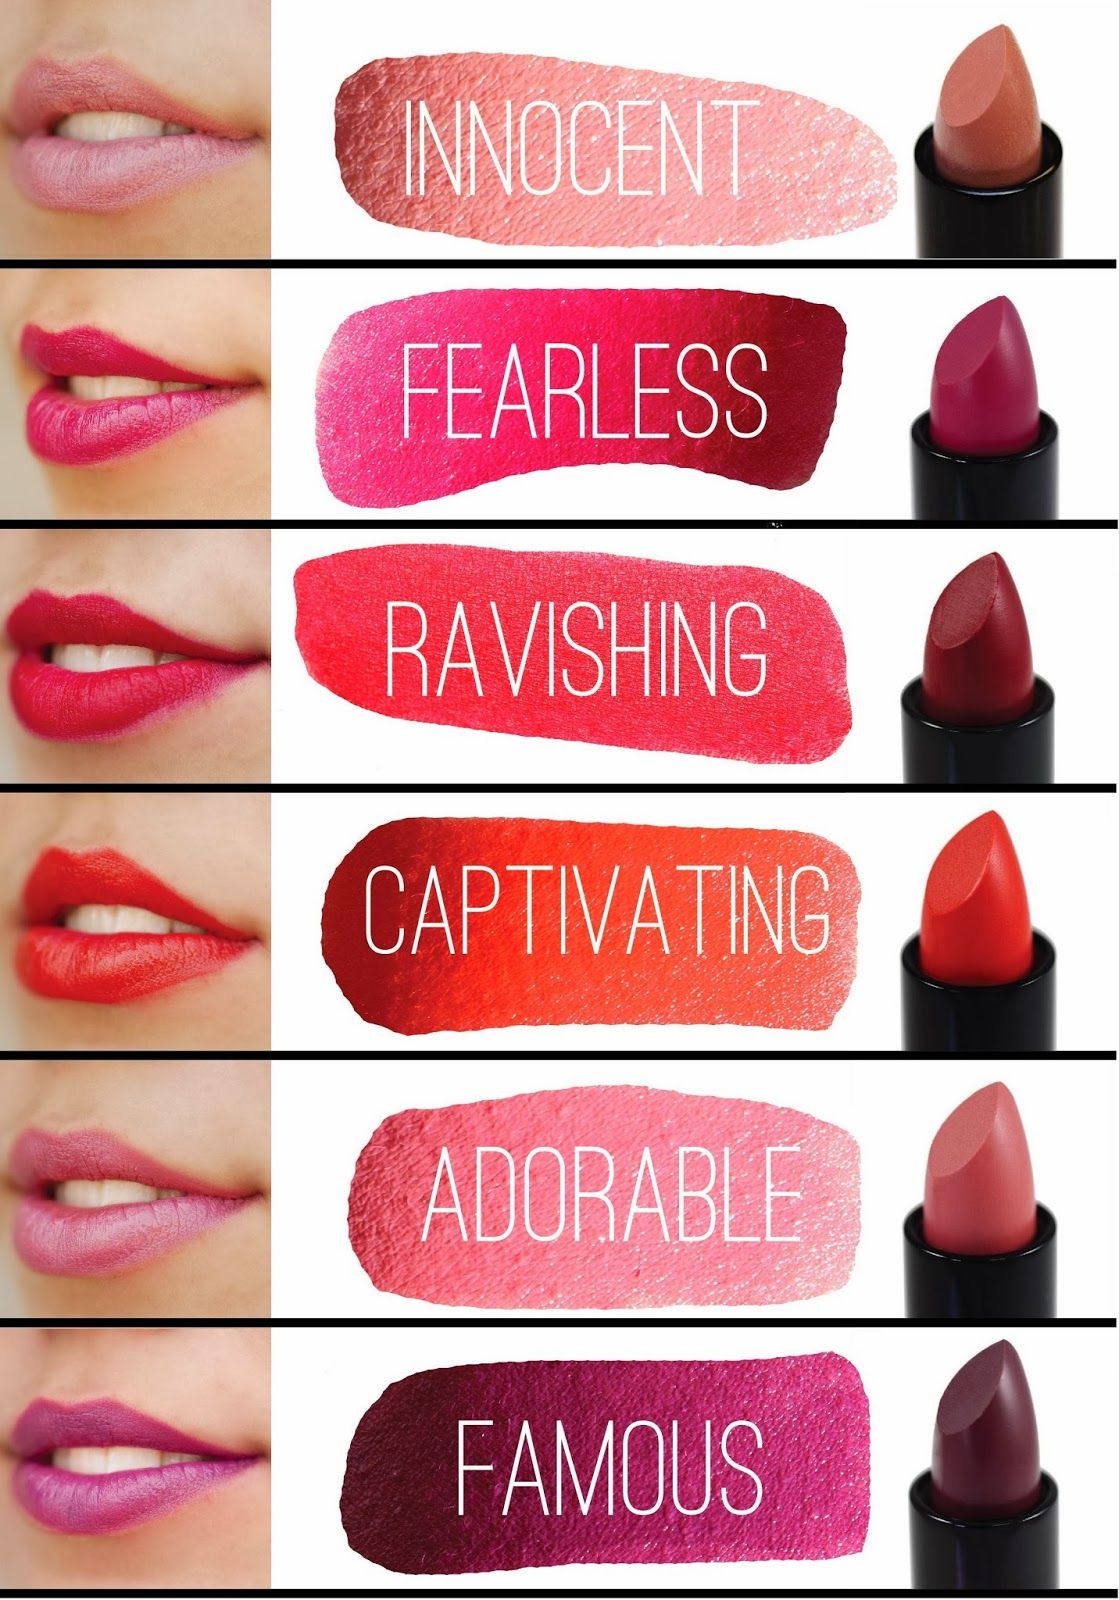 Skin Care Tips Picking The Right Shade Of Lipstick For